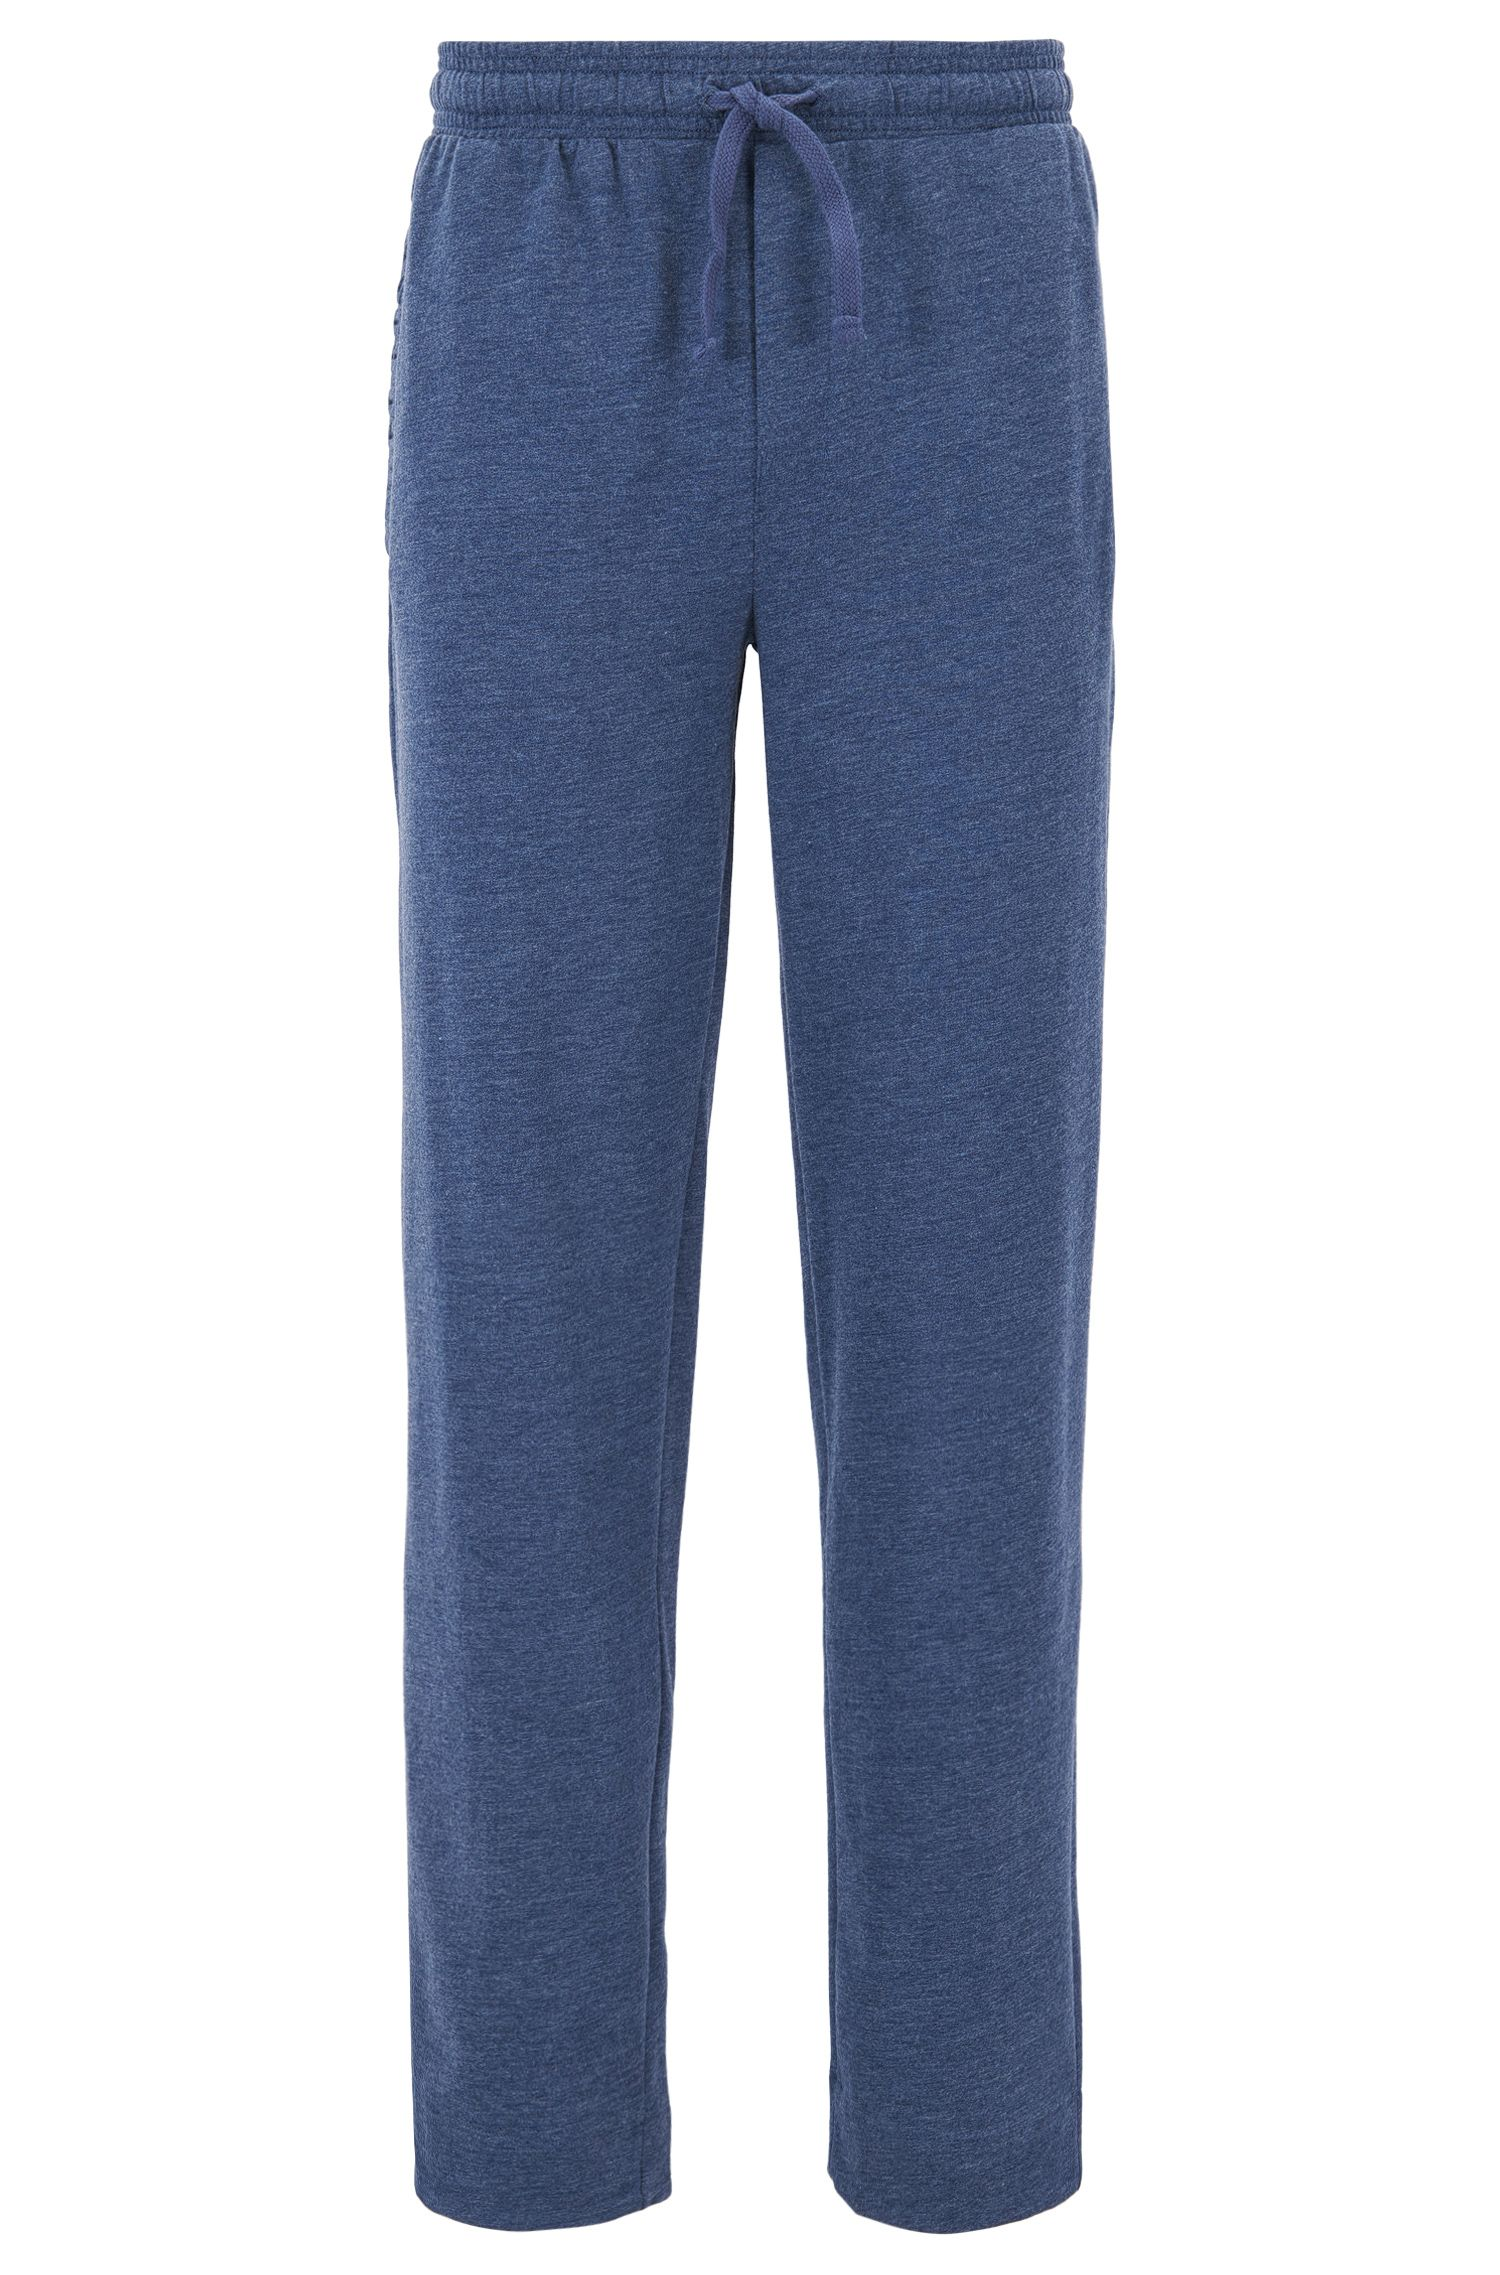 Pyjama trousers in mélange French terry